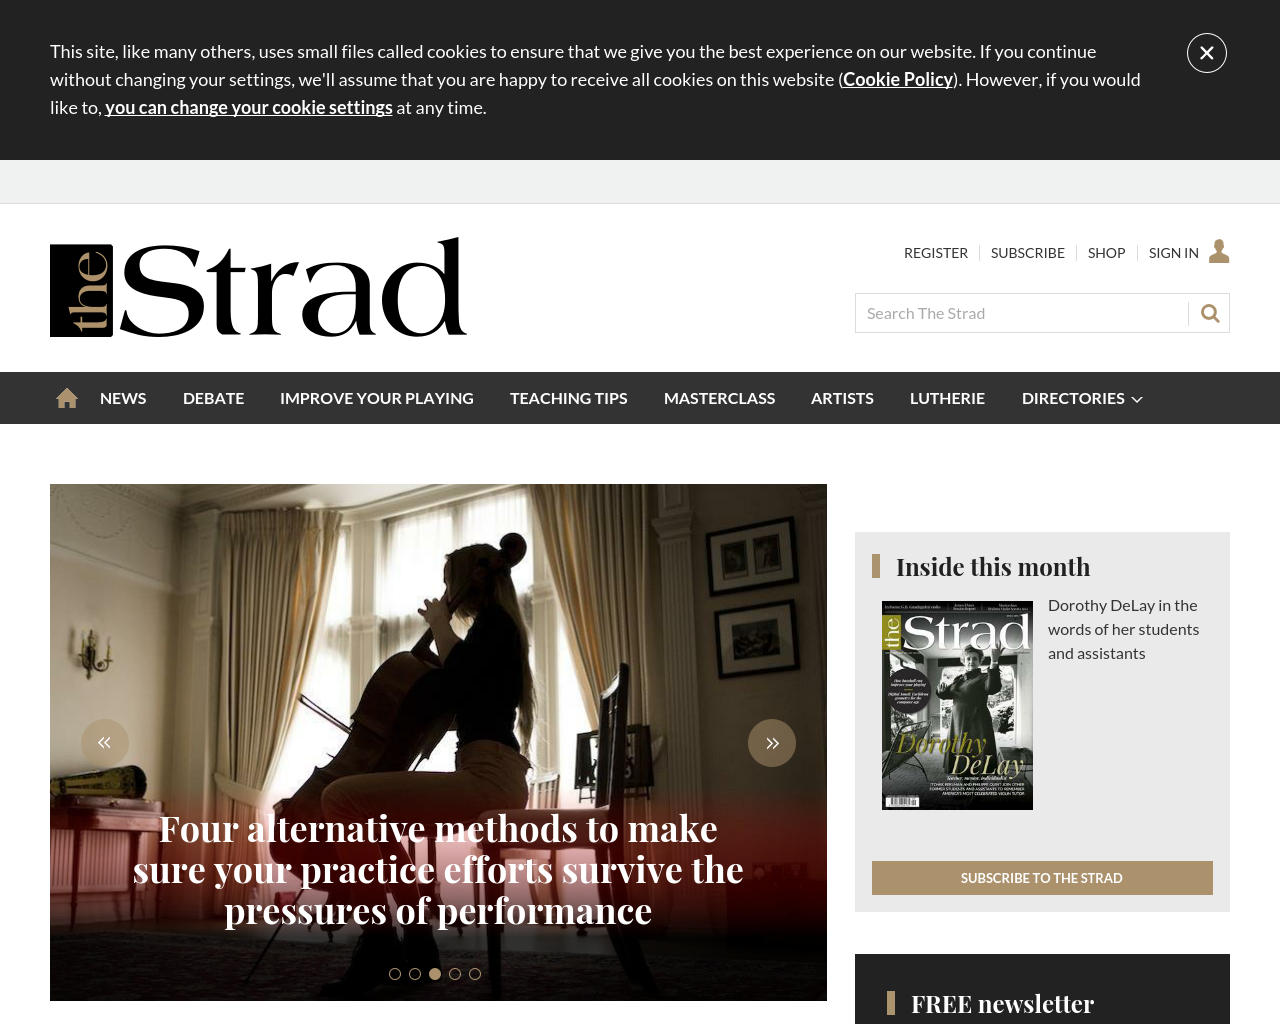 The-Strad-Advertising-Reviews-Pricing